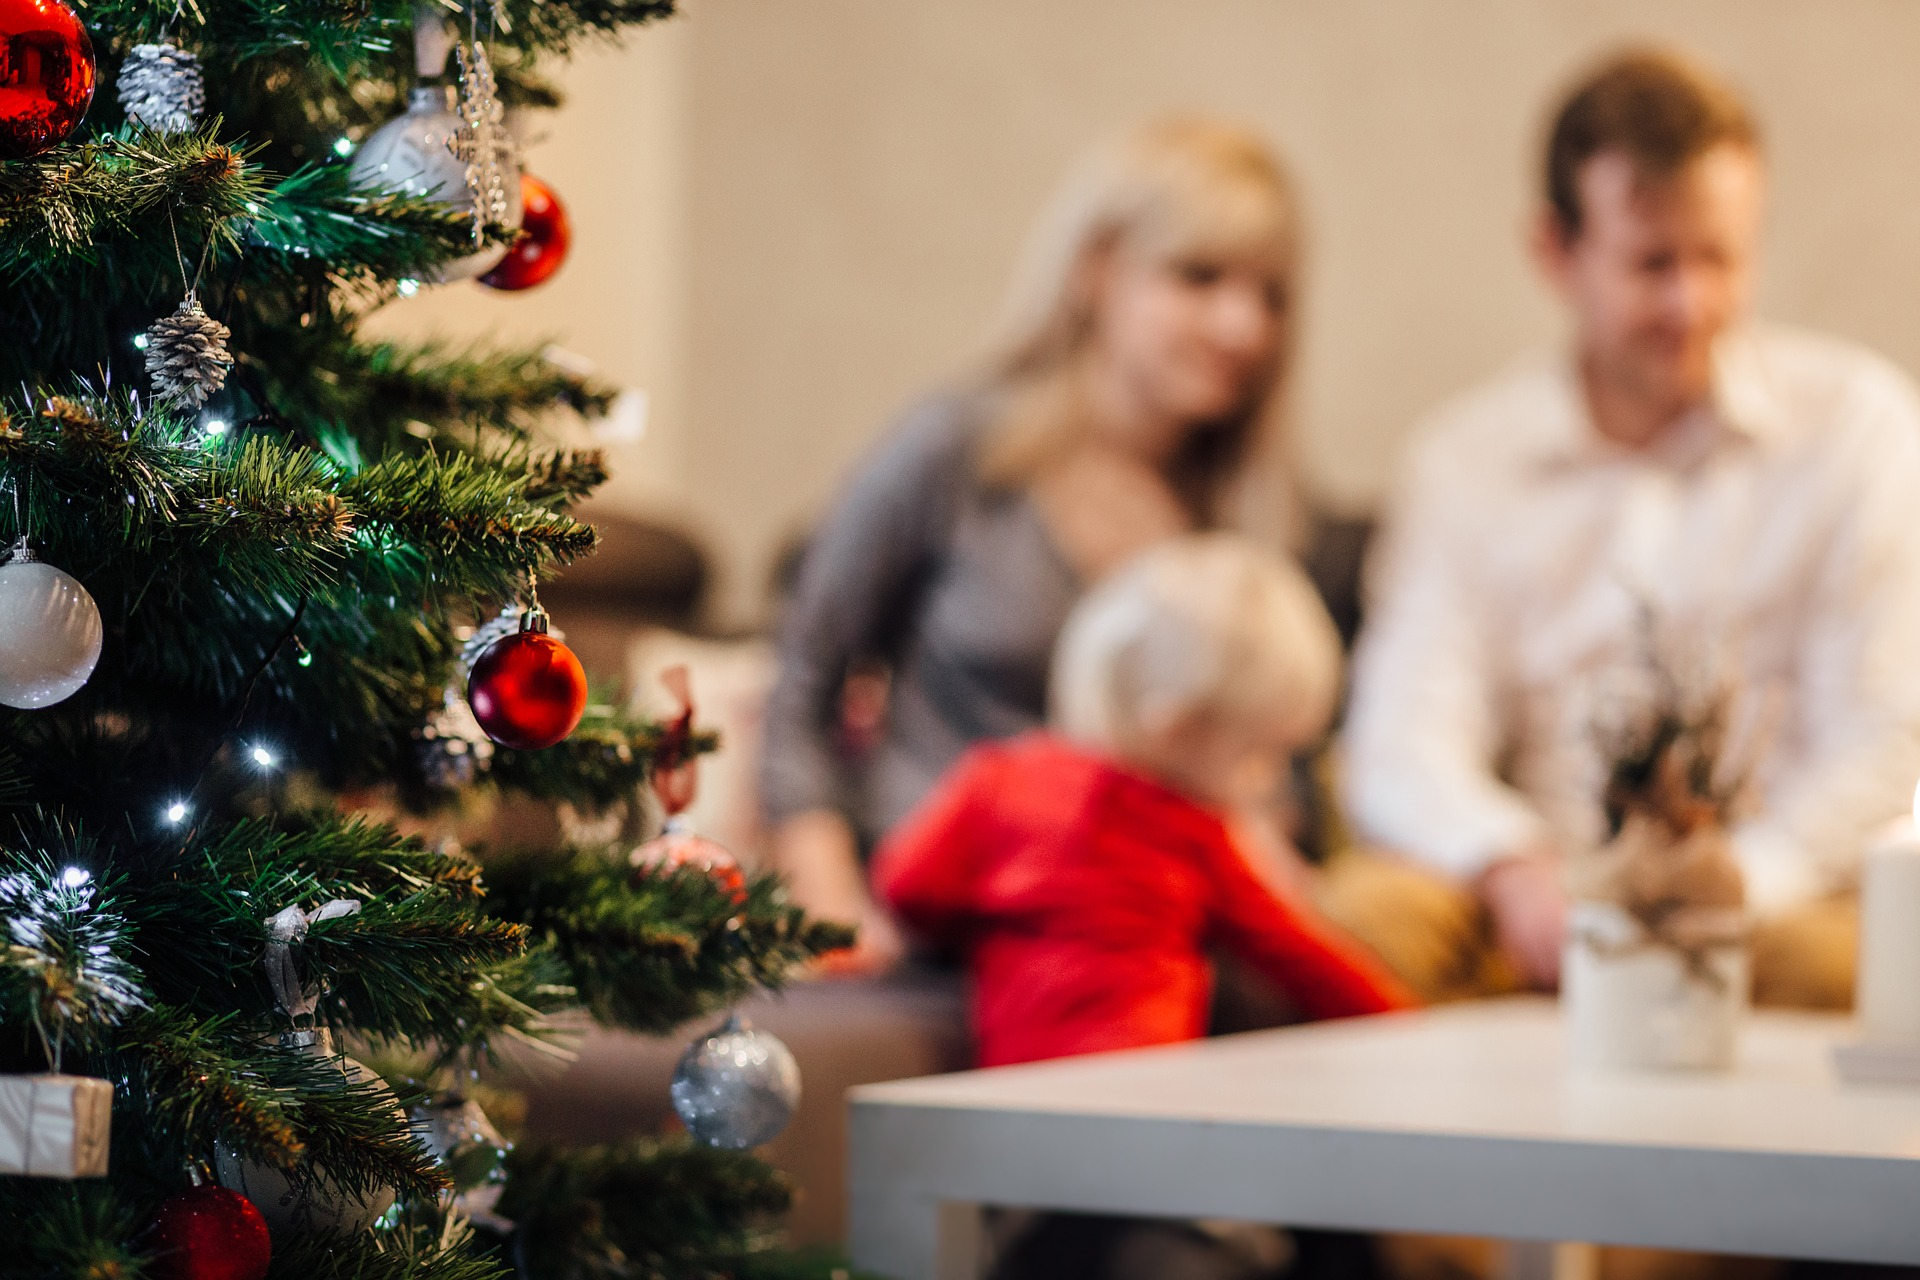 Children With ASD - A Family Celebrating Christmas